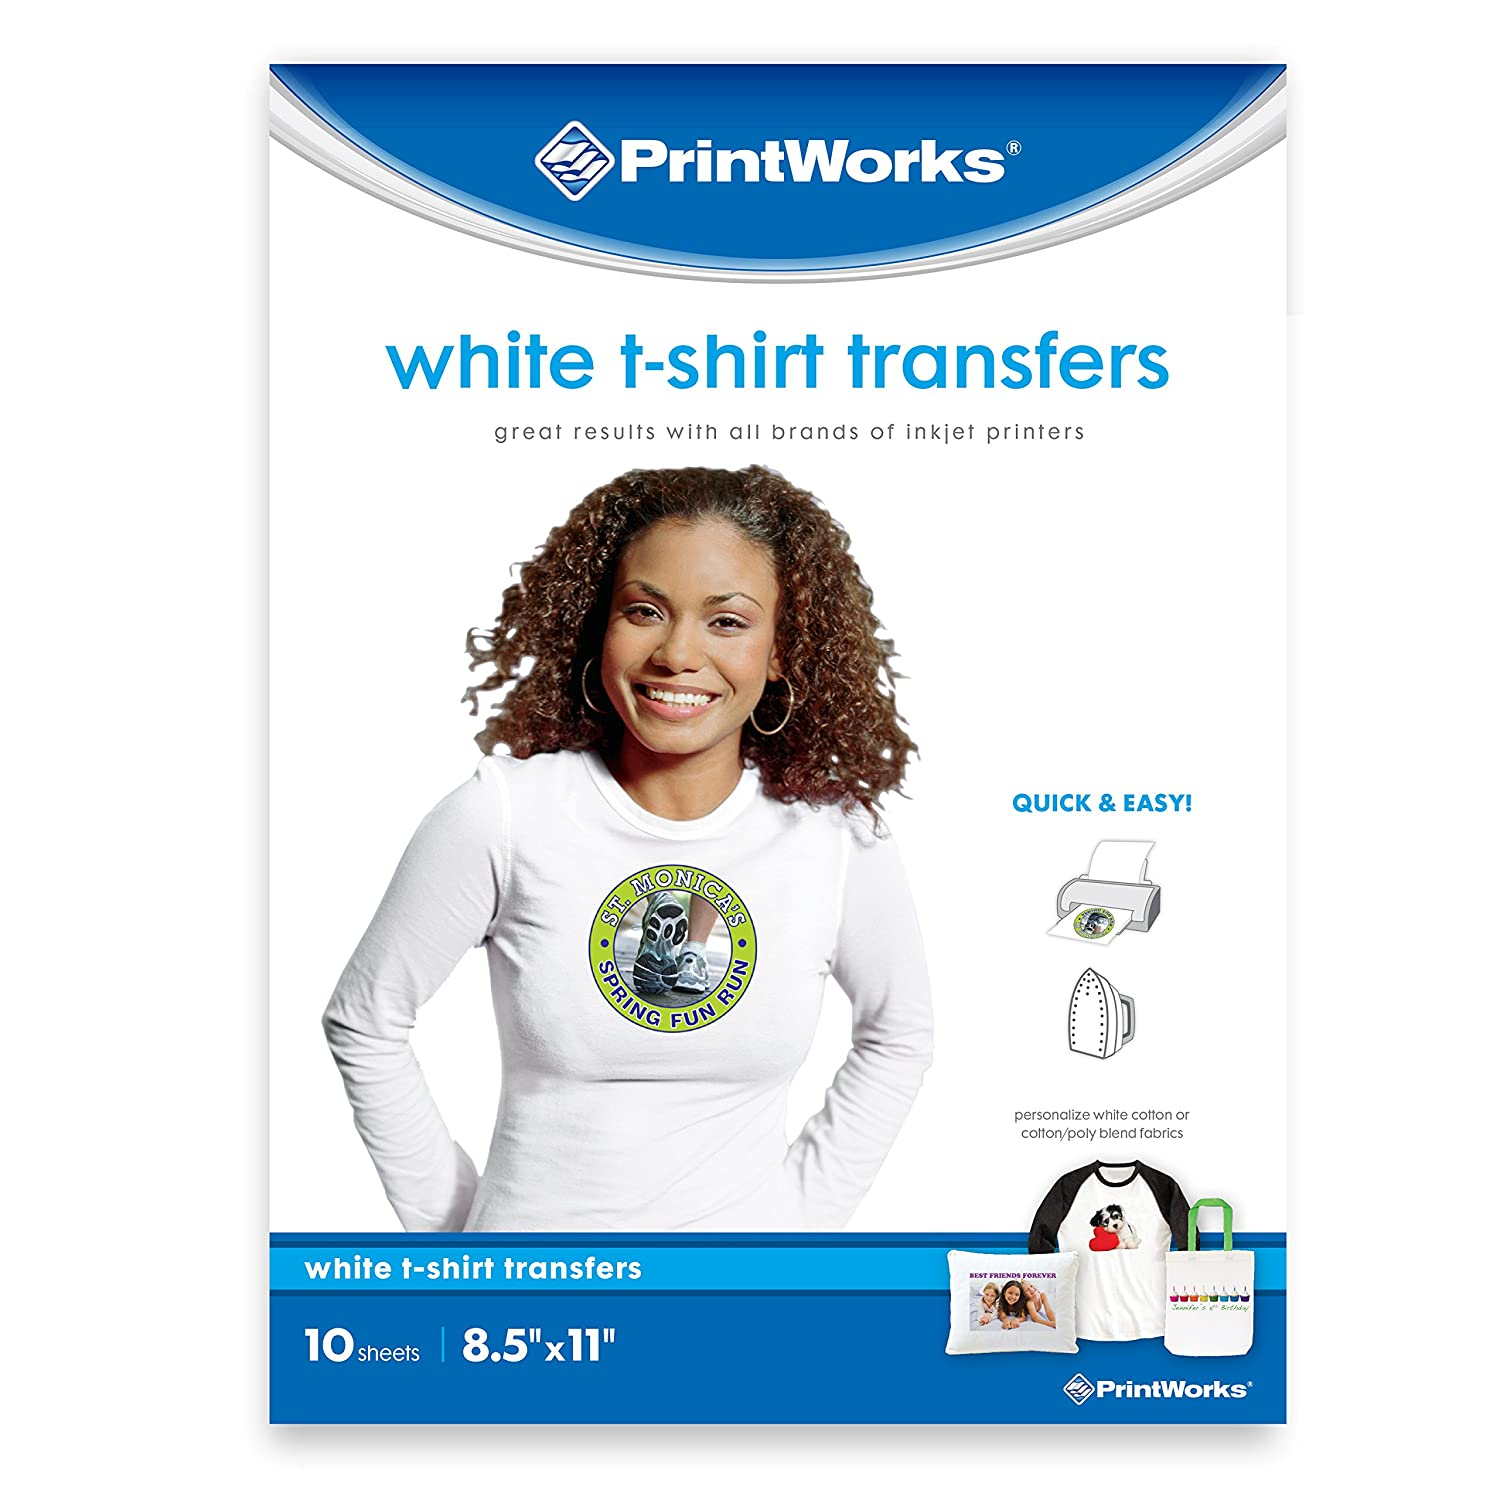 66bfd5e32 Amazon.com : Printworks White T-Shirt Transfers for Inkjet Printers, For  Use on White Fabrics Only, Photo Quality Prints, 10 Sheets, 8 ½